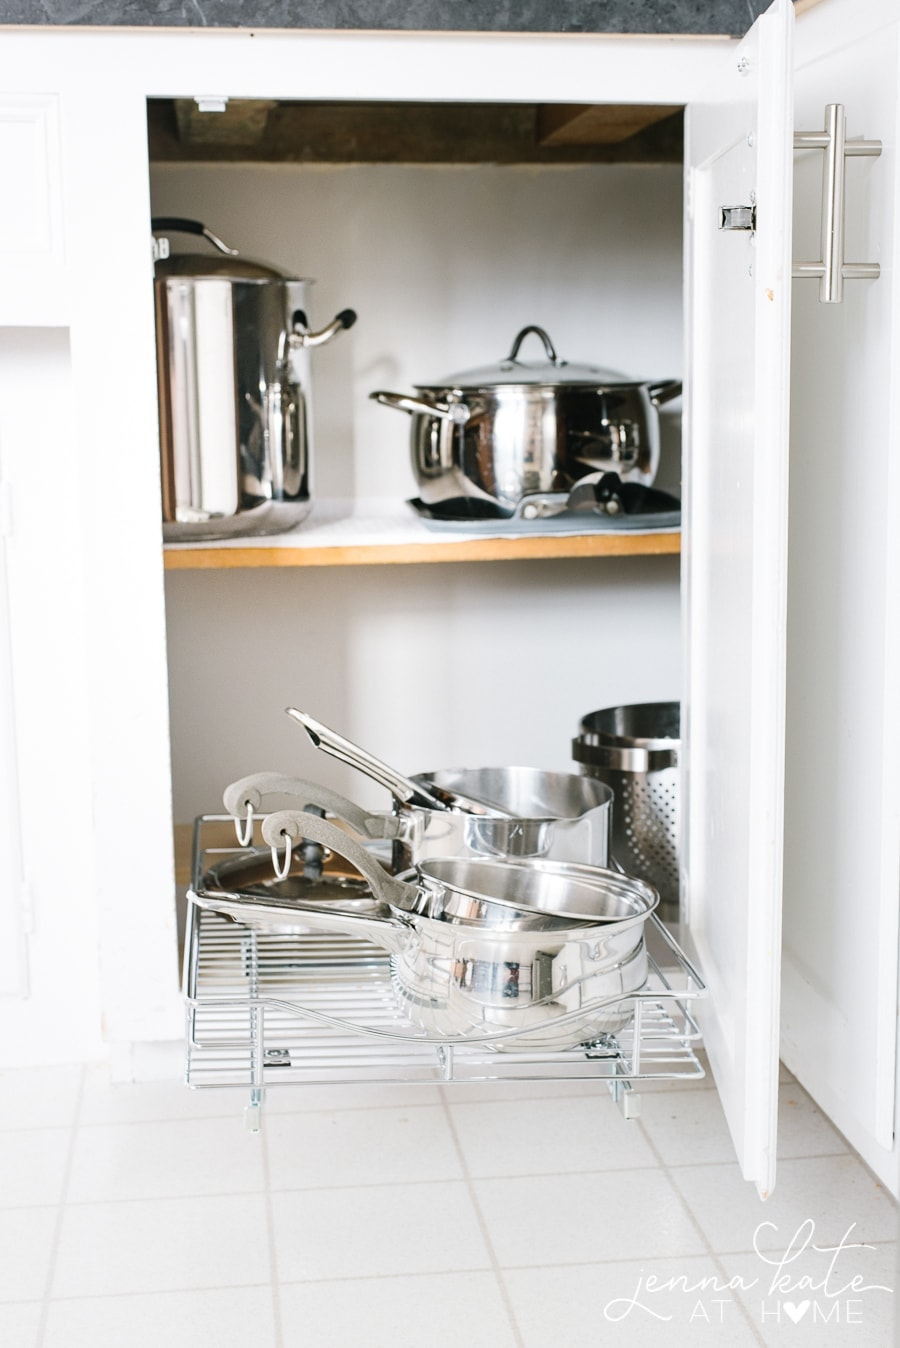 The best organizer for deep kitchen cabinets